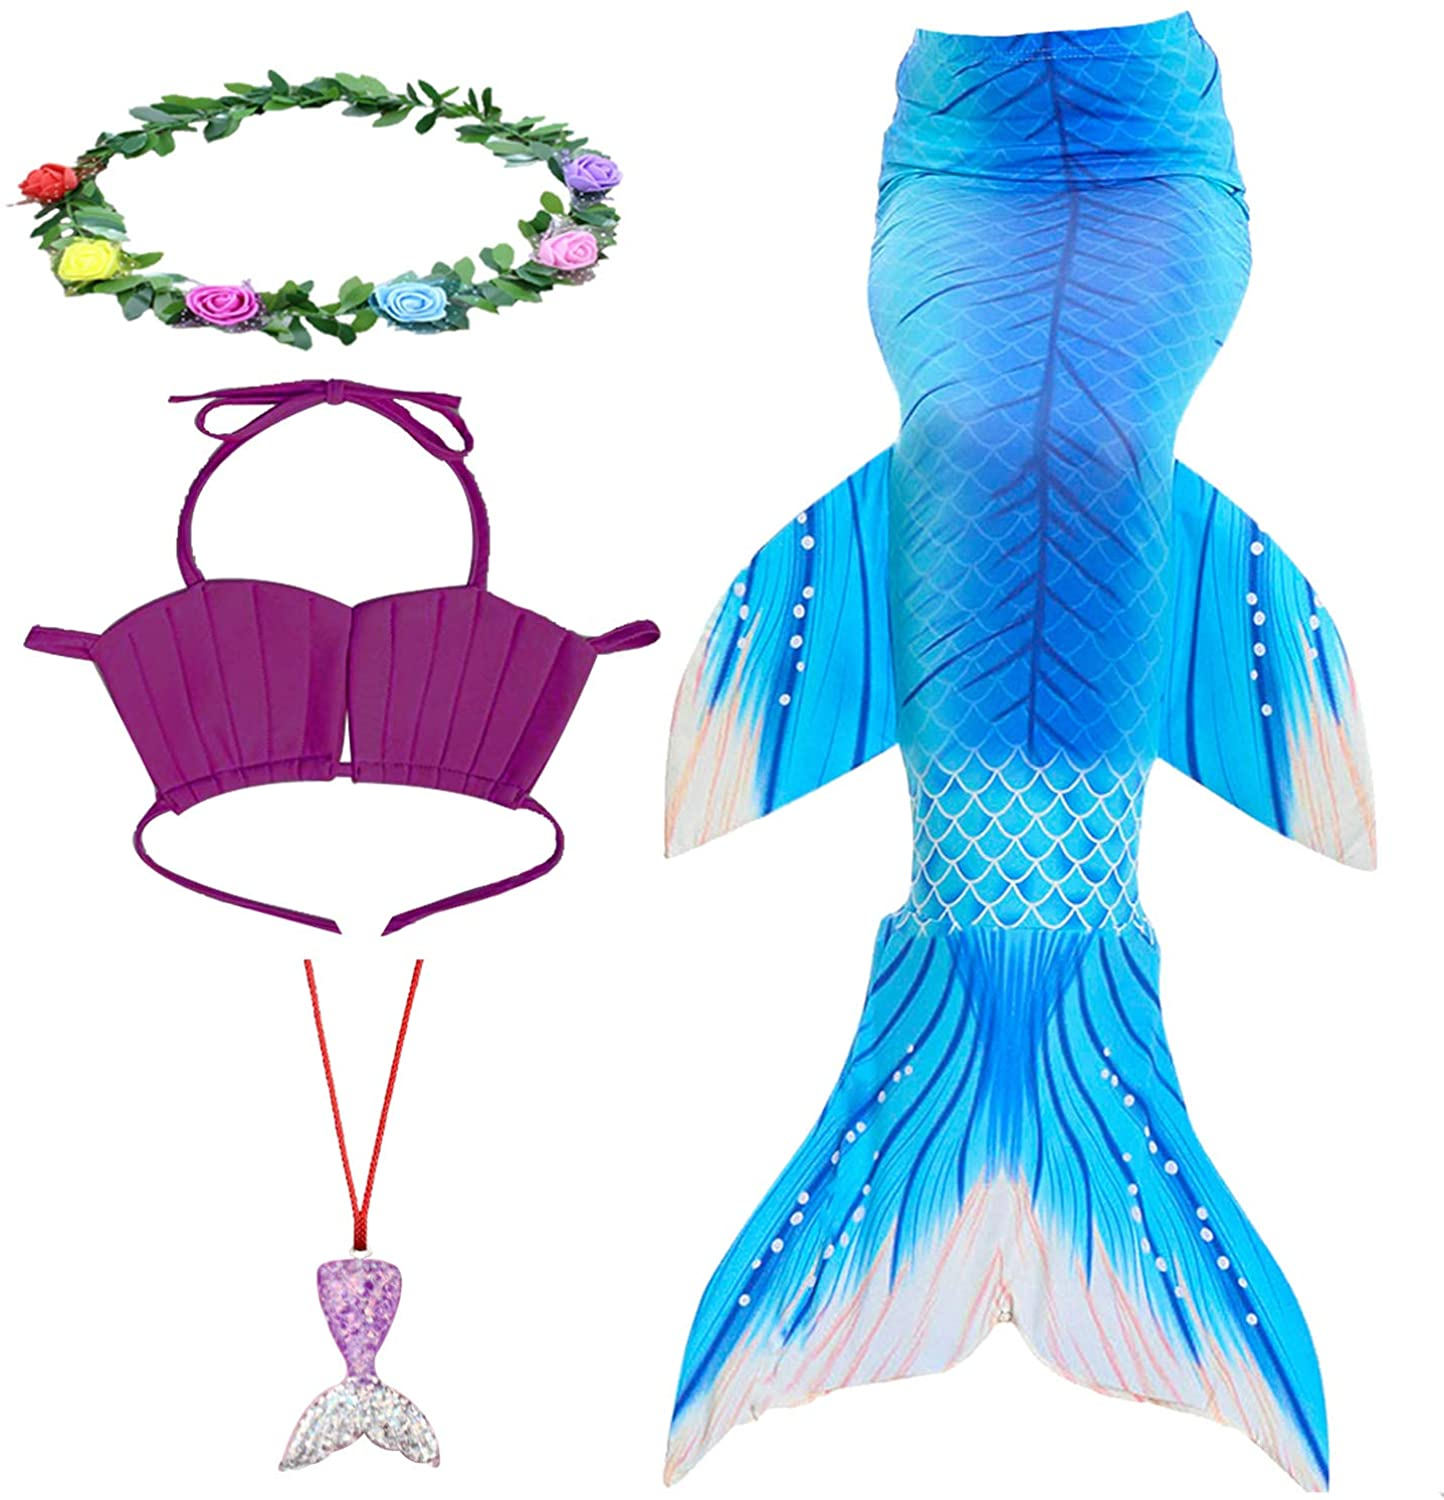 KESEPLEI Girls Mermaid Tails for Swimming with Bikini Swimsuits Cosplay Costume for Girls 4-13Y